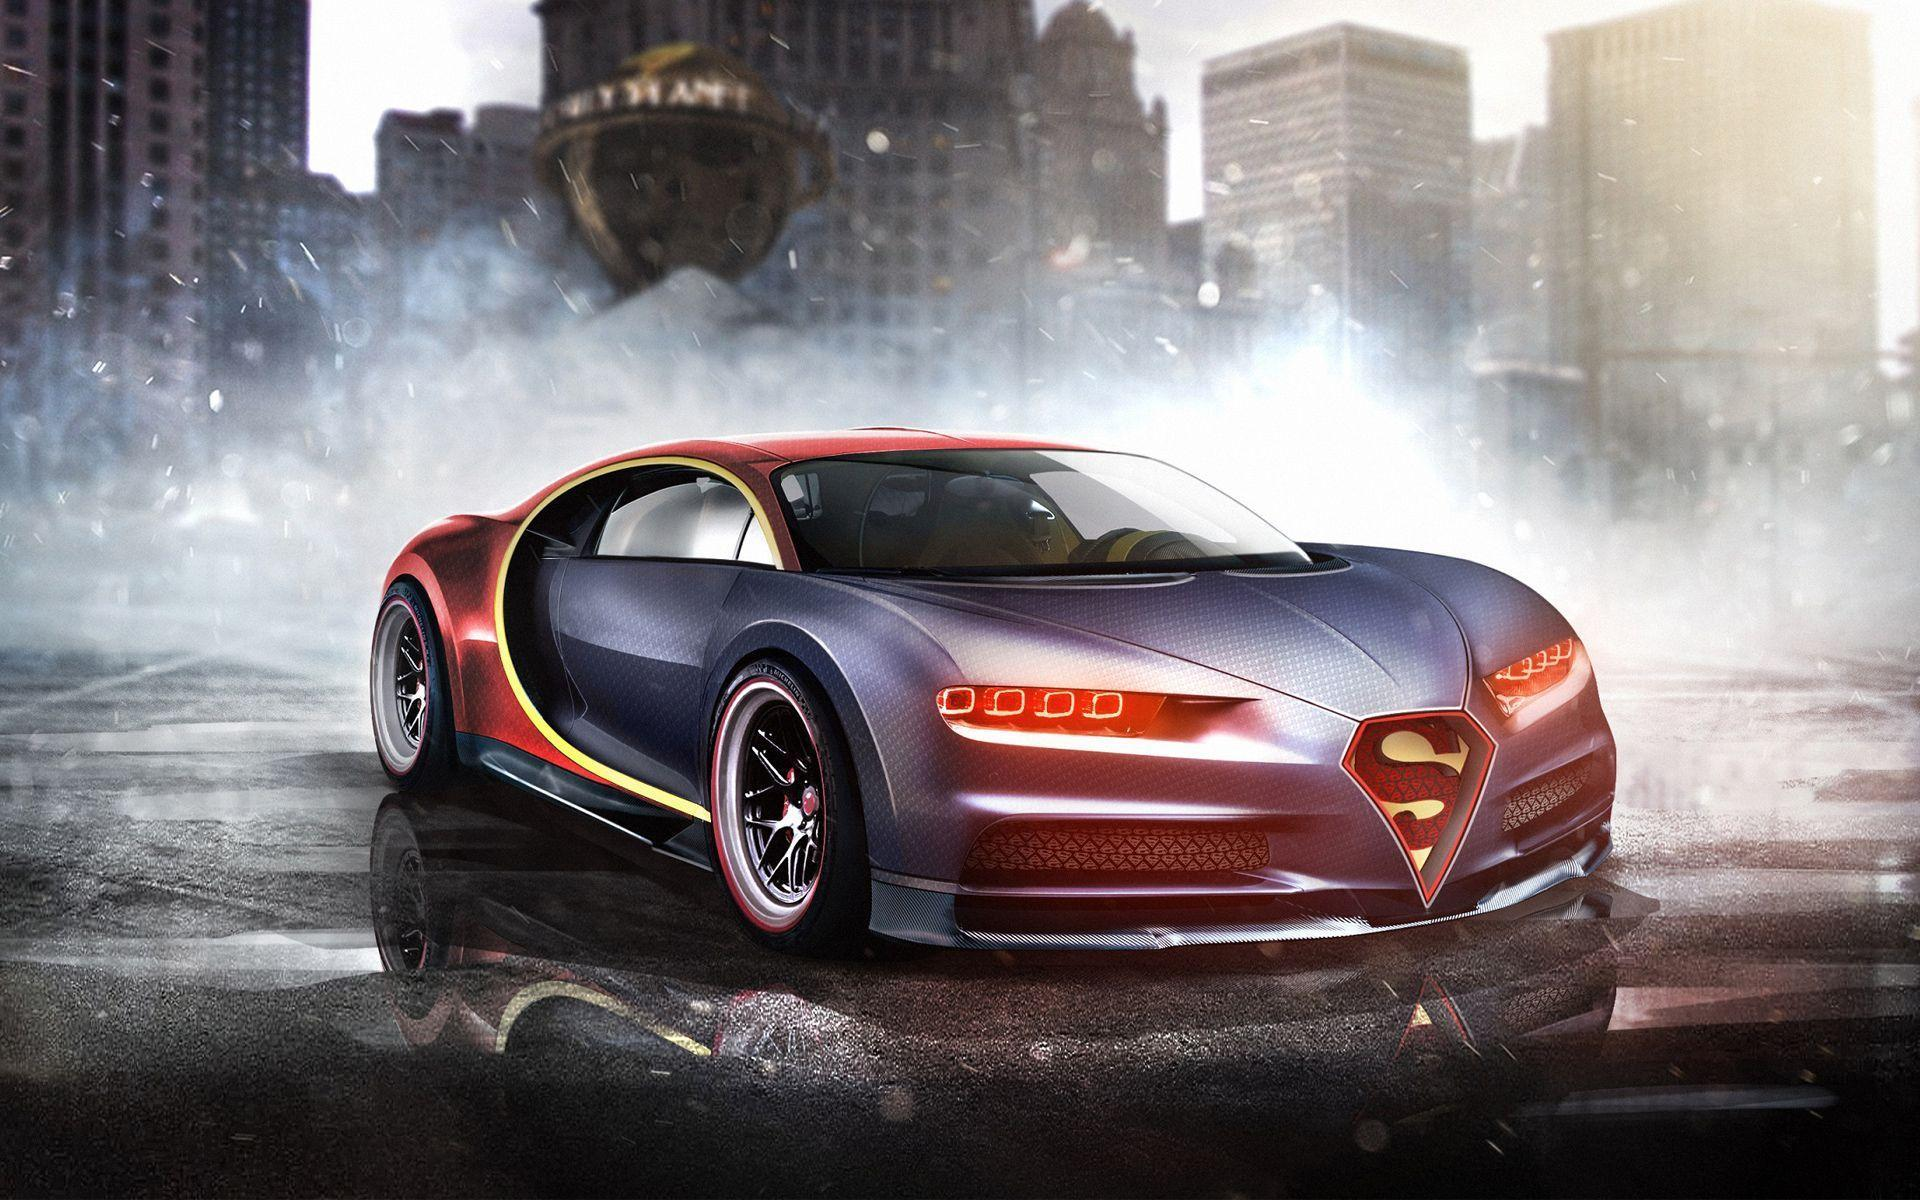 Superman Bugatti Chiro Wallpapers